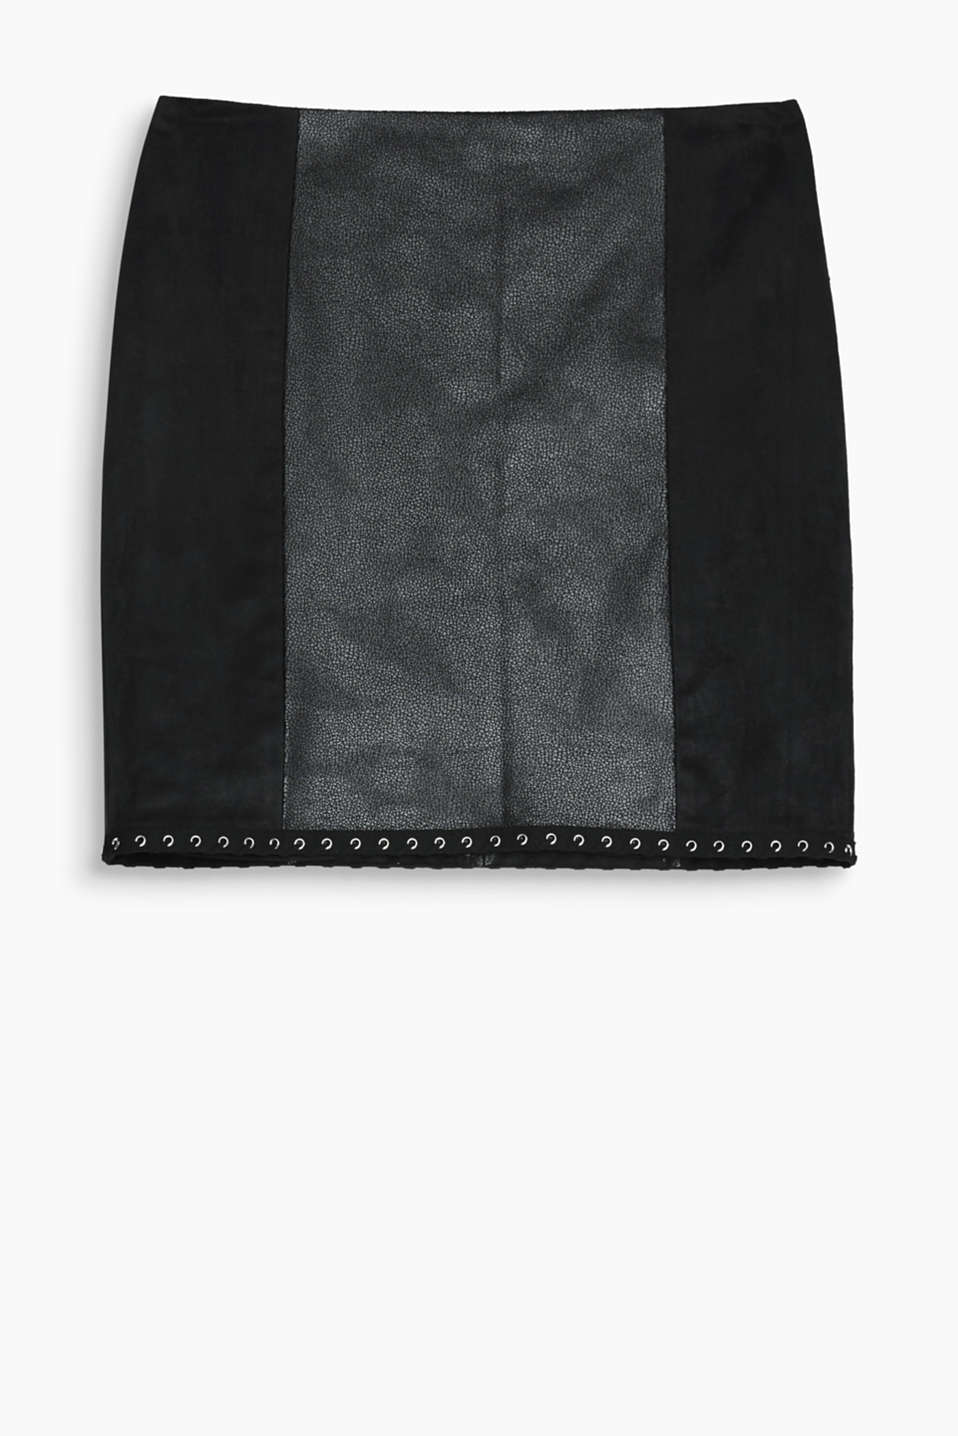 Rock-chic or extravagant - this mini skirt gives you both with embossed and velvety faux leather plus eyelets along the hem!